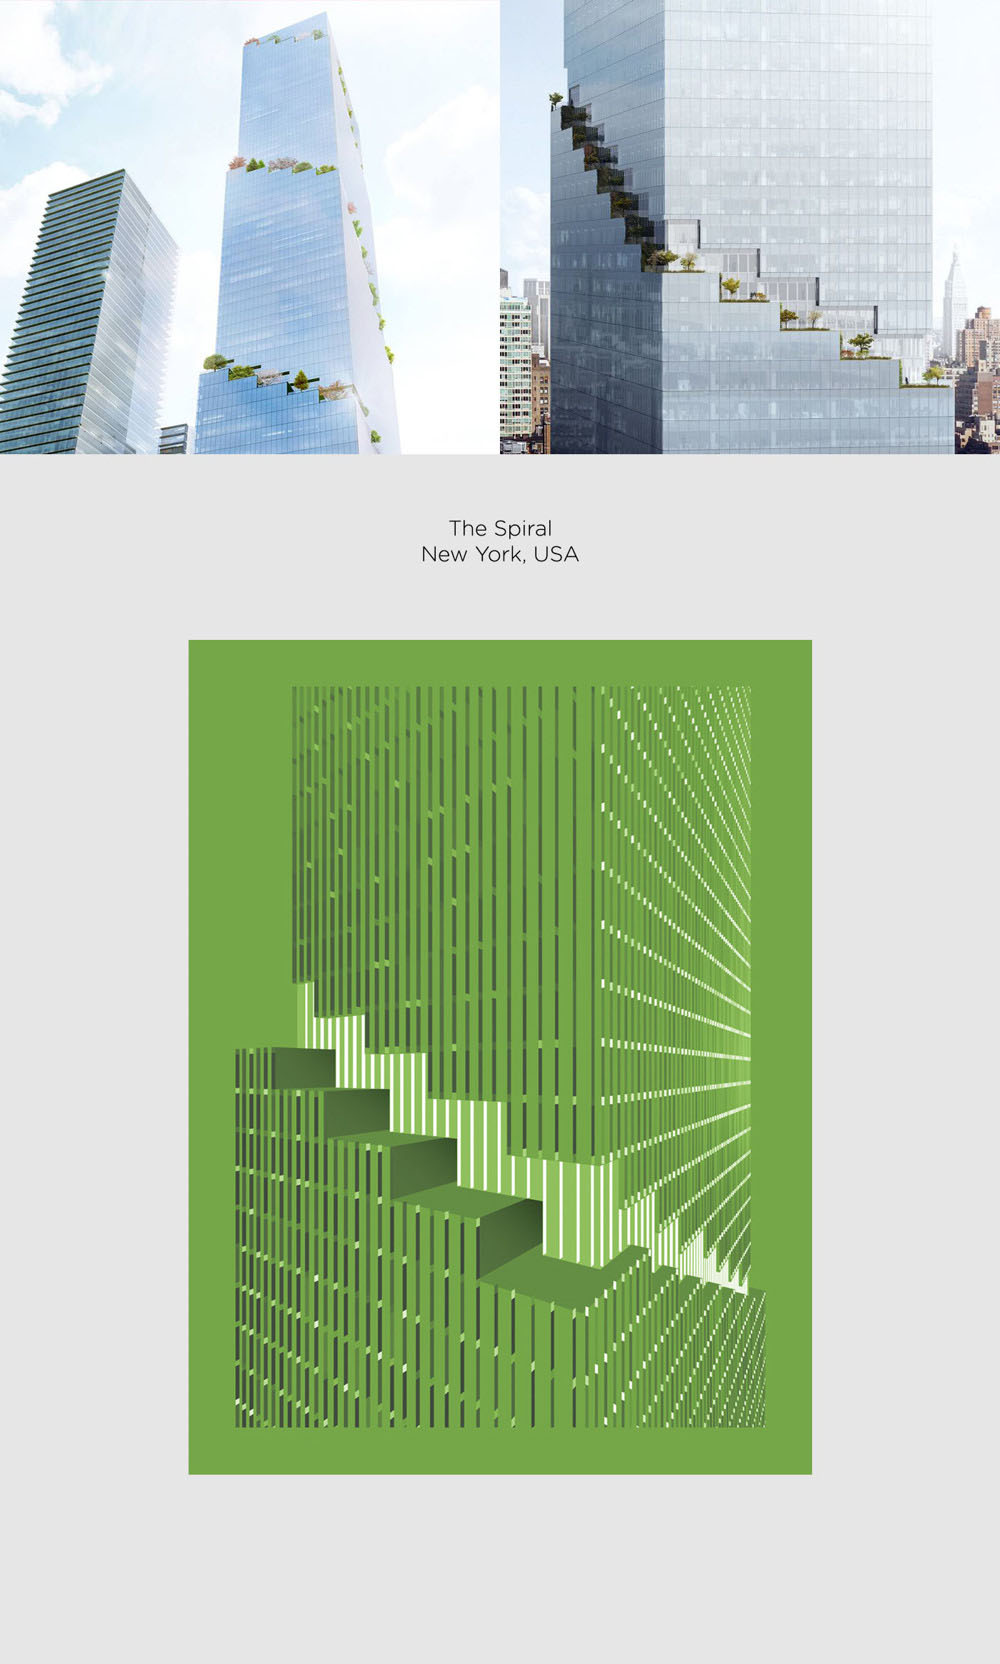 The Spiral by Bjarke Ingles Group (BIG) poster